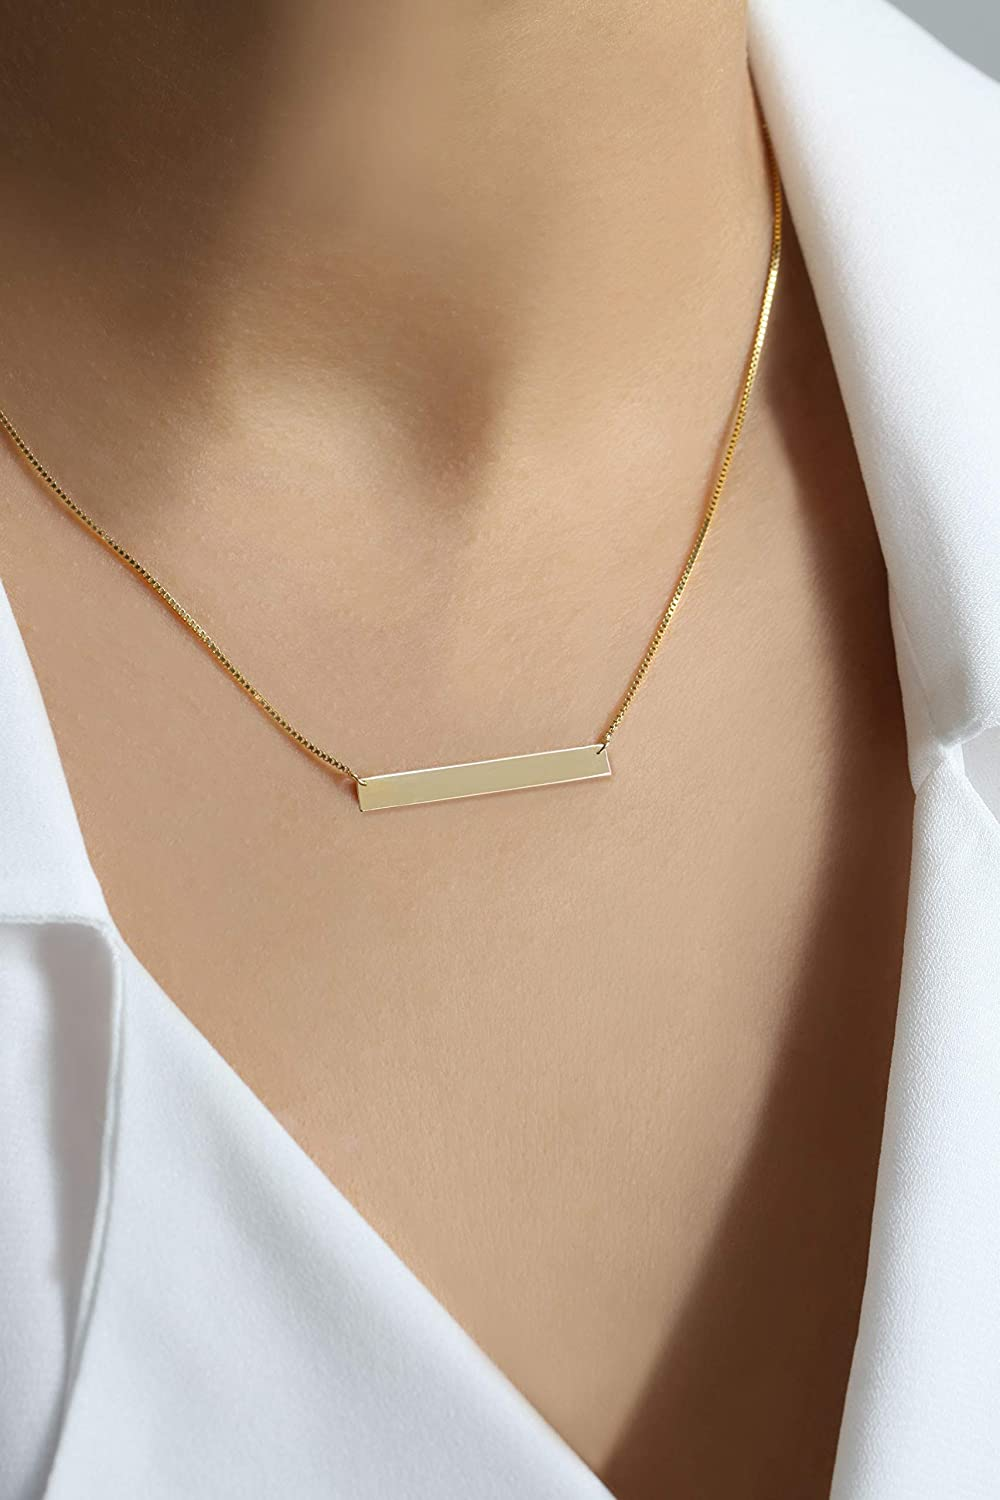 14k Solid White//Yellow Gold engravable Gold Vertical Bar Necklace 1 inch initial necklace celebrity nameplate pendant